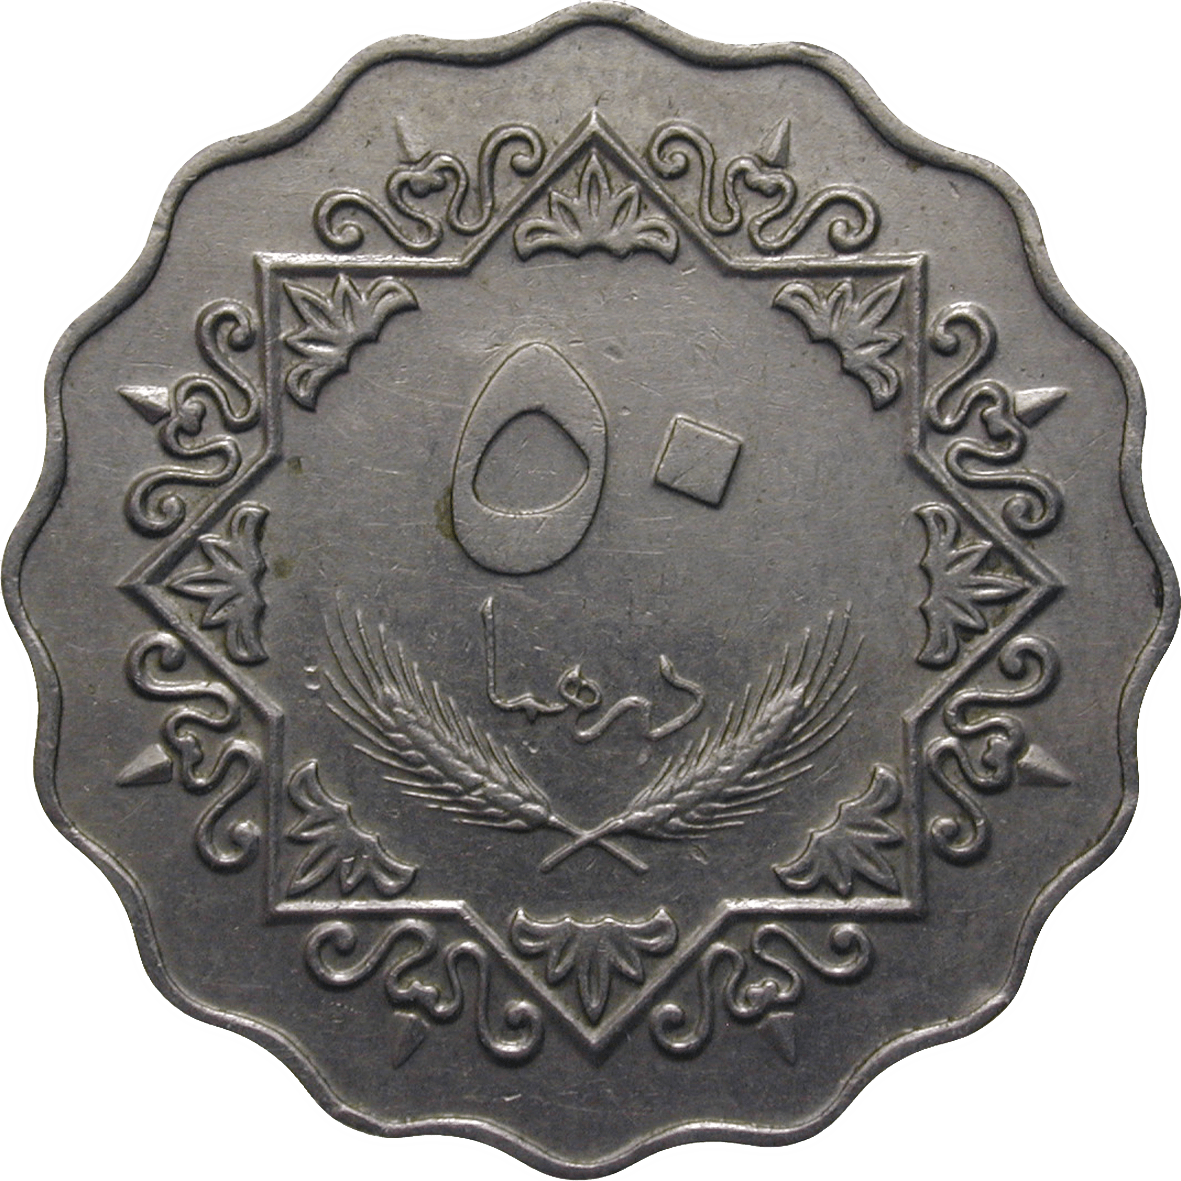 Republic of Libya, 50 Dirhems 1395 AH (reverse)